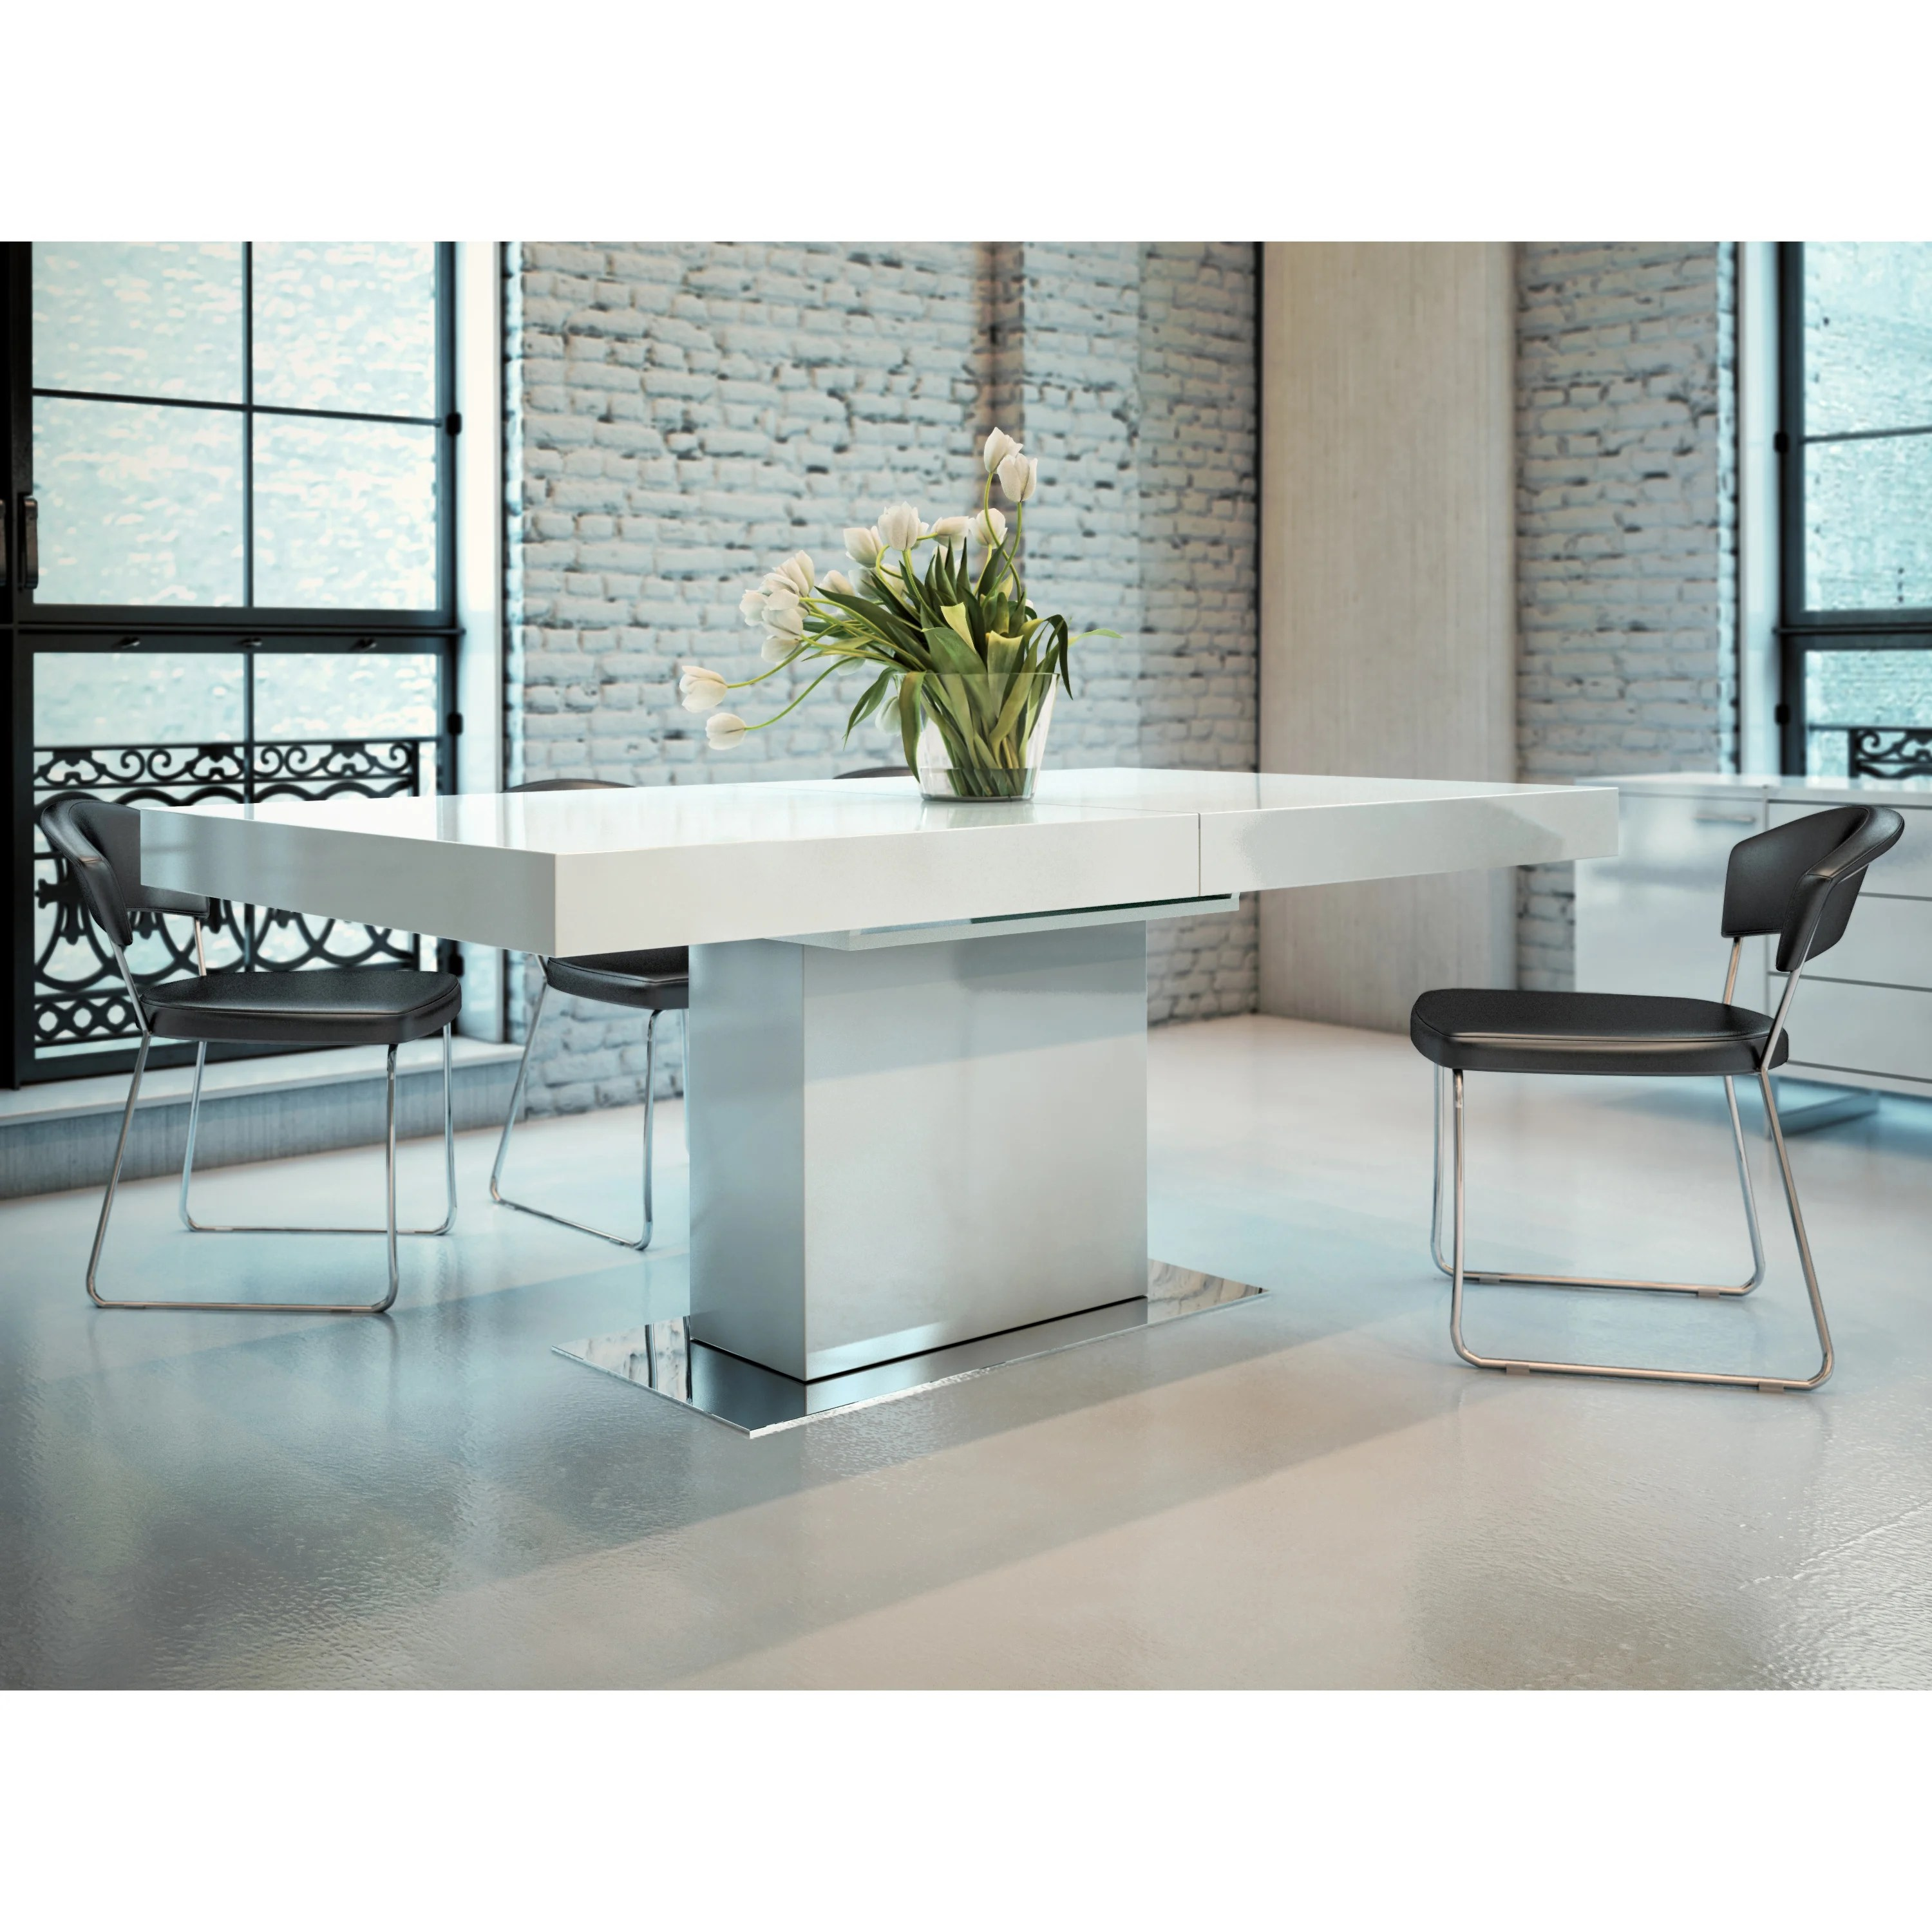 dining kitchen tables c modern kitchen table Astor Dining Table